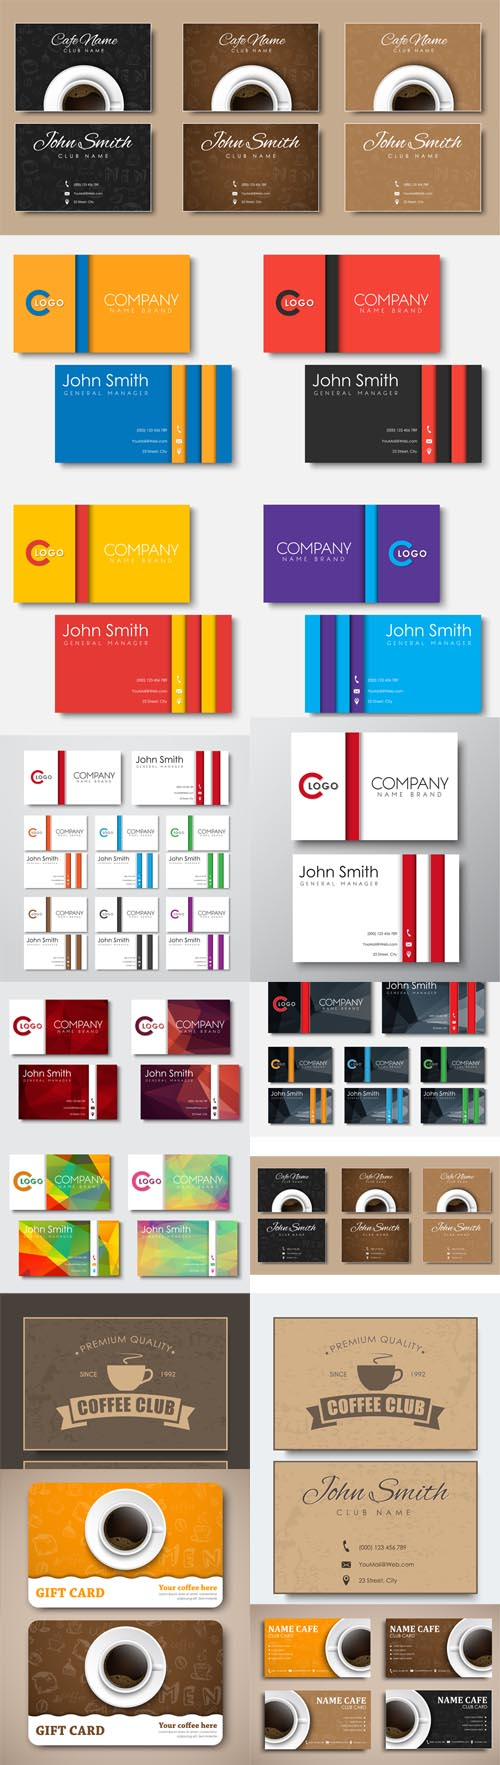 Vector Business Cards Templates in the Style of the Material Design